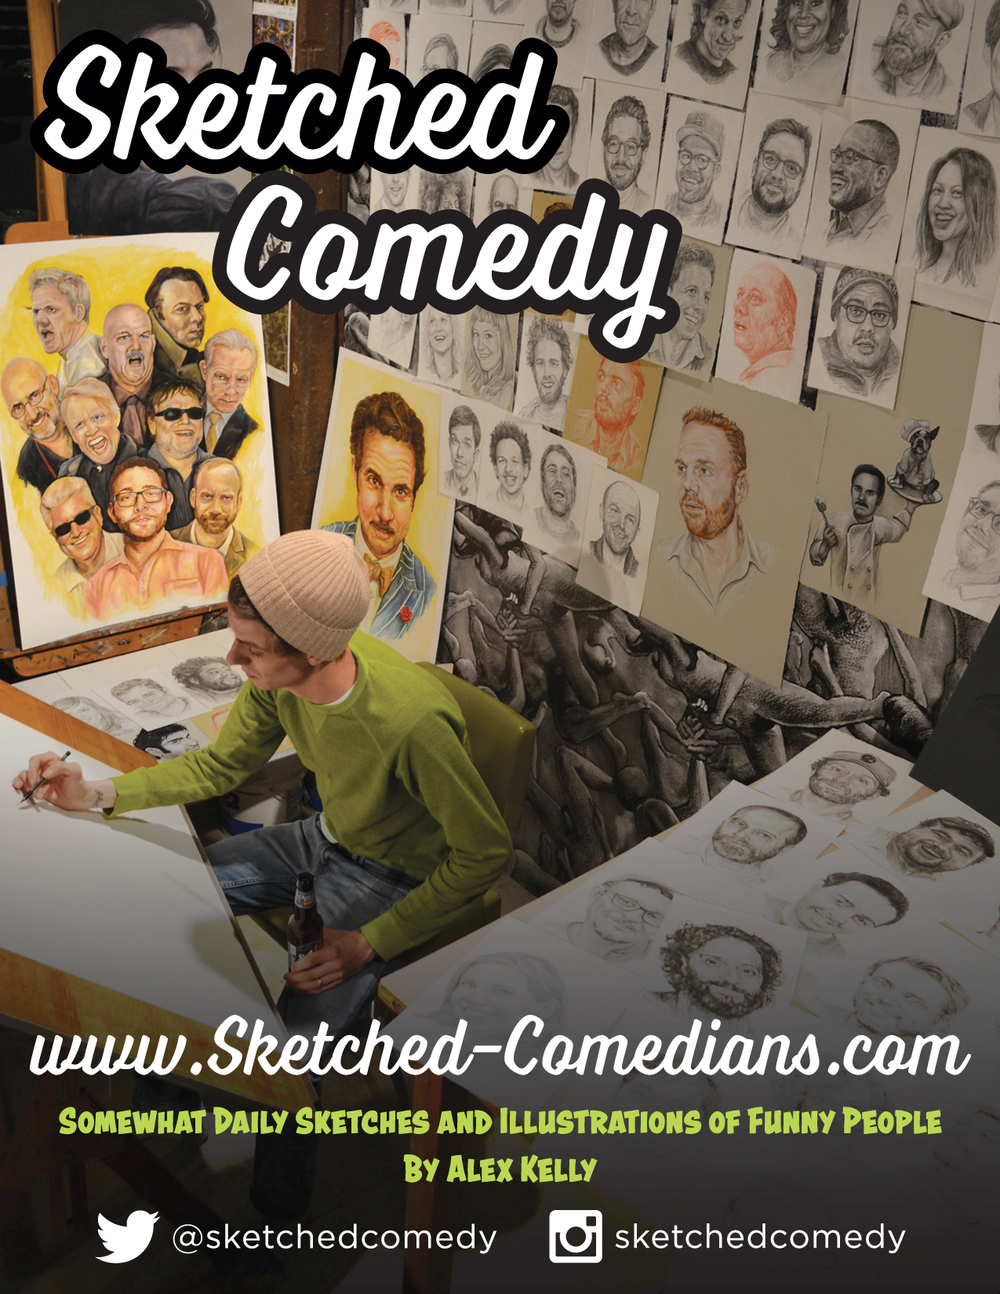 ALEX KELLY is an artist from Cleveland OH who sketches some of the most detailed and wonderful portraits of comedians. He is compiling them into a book for you to put out and impress people with. He's done major work for national acts like John Roy, James Adomian and more.